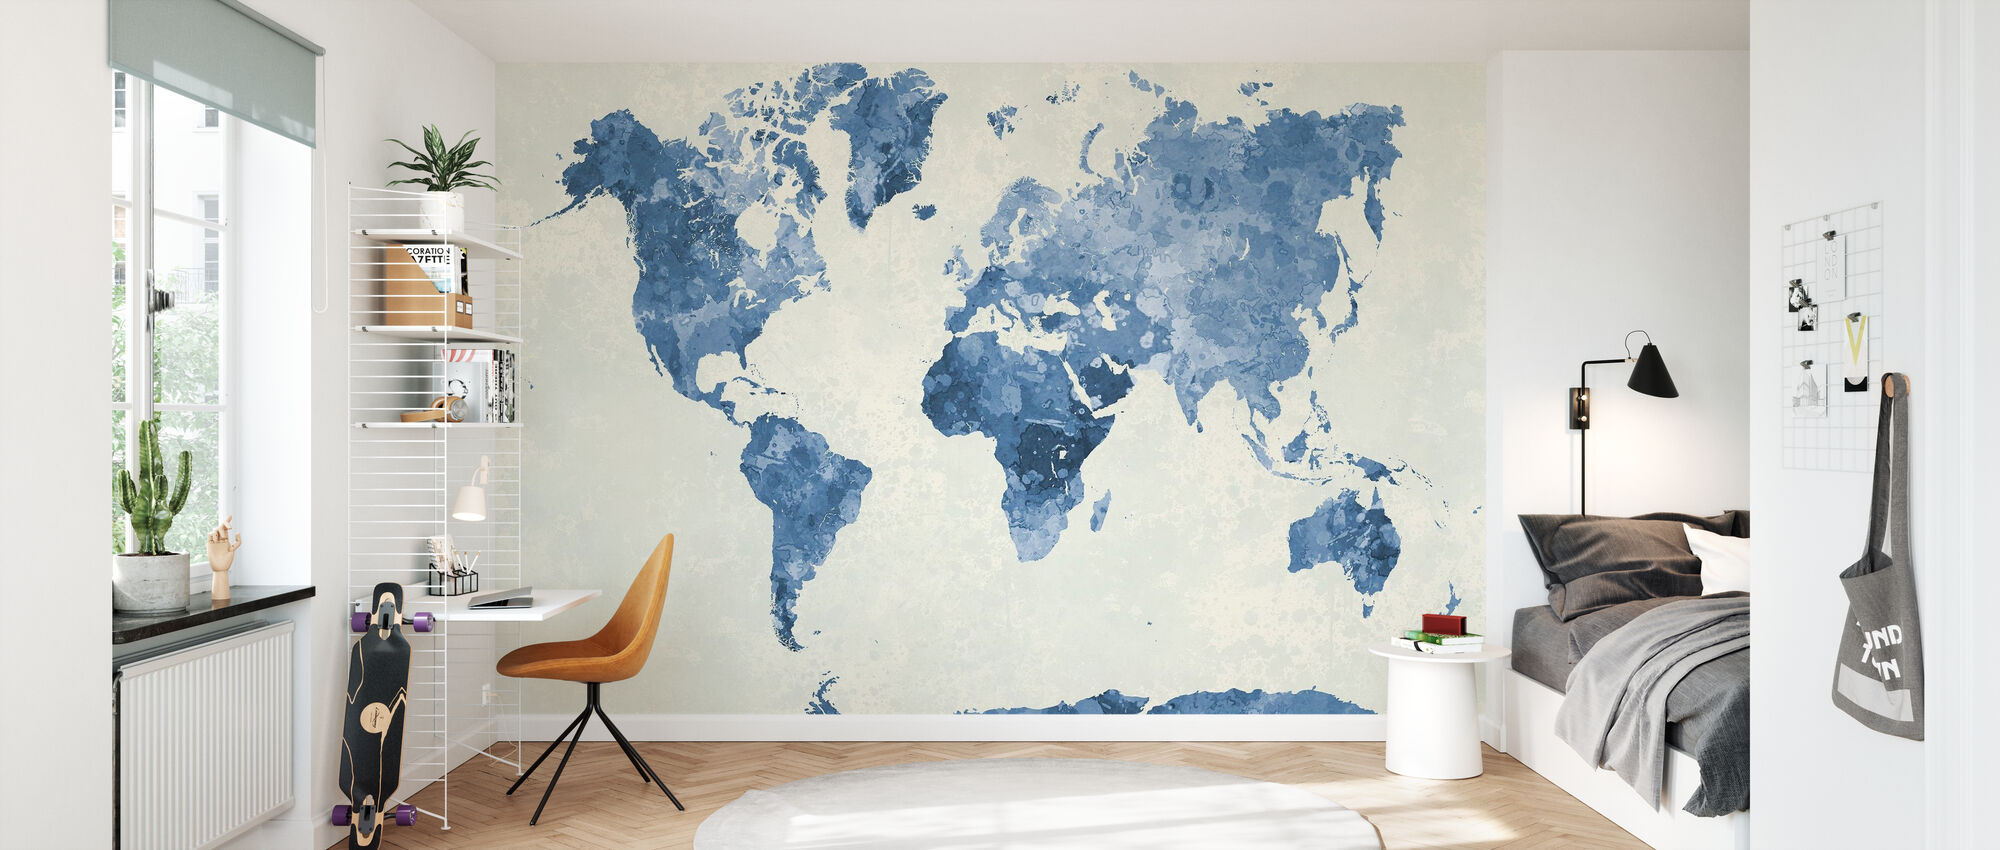 Blue World in Watercolor - Wallpaper - Kids Room